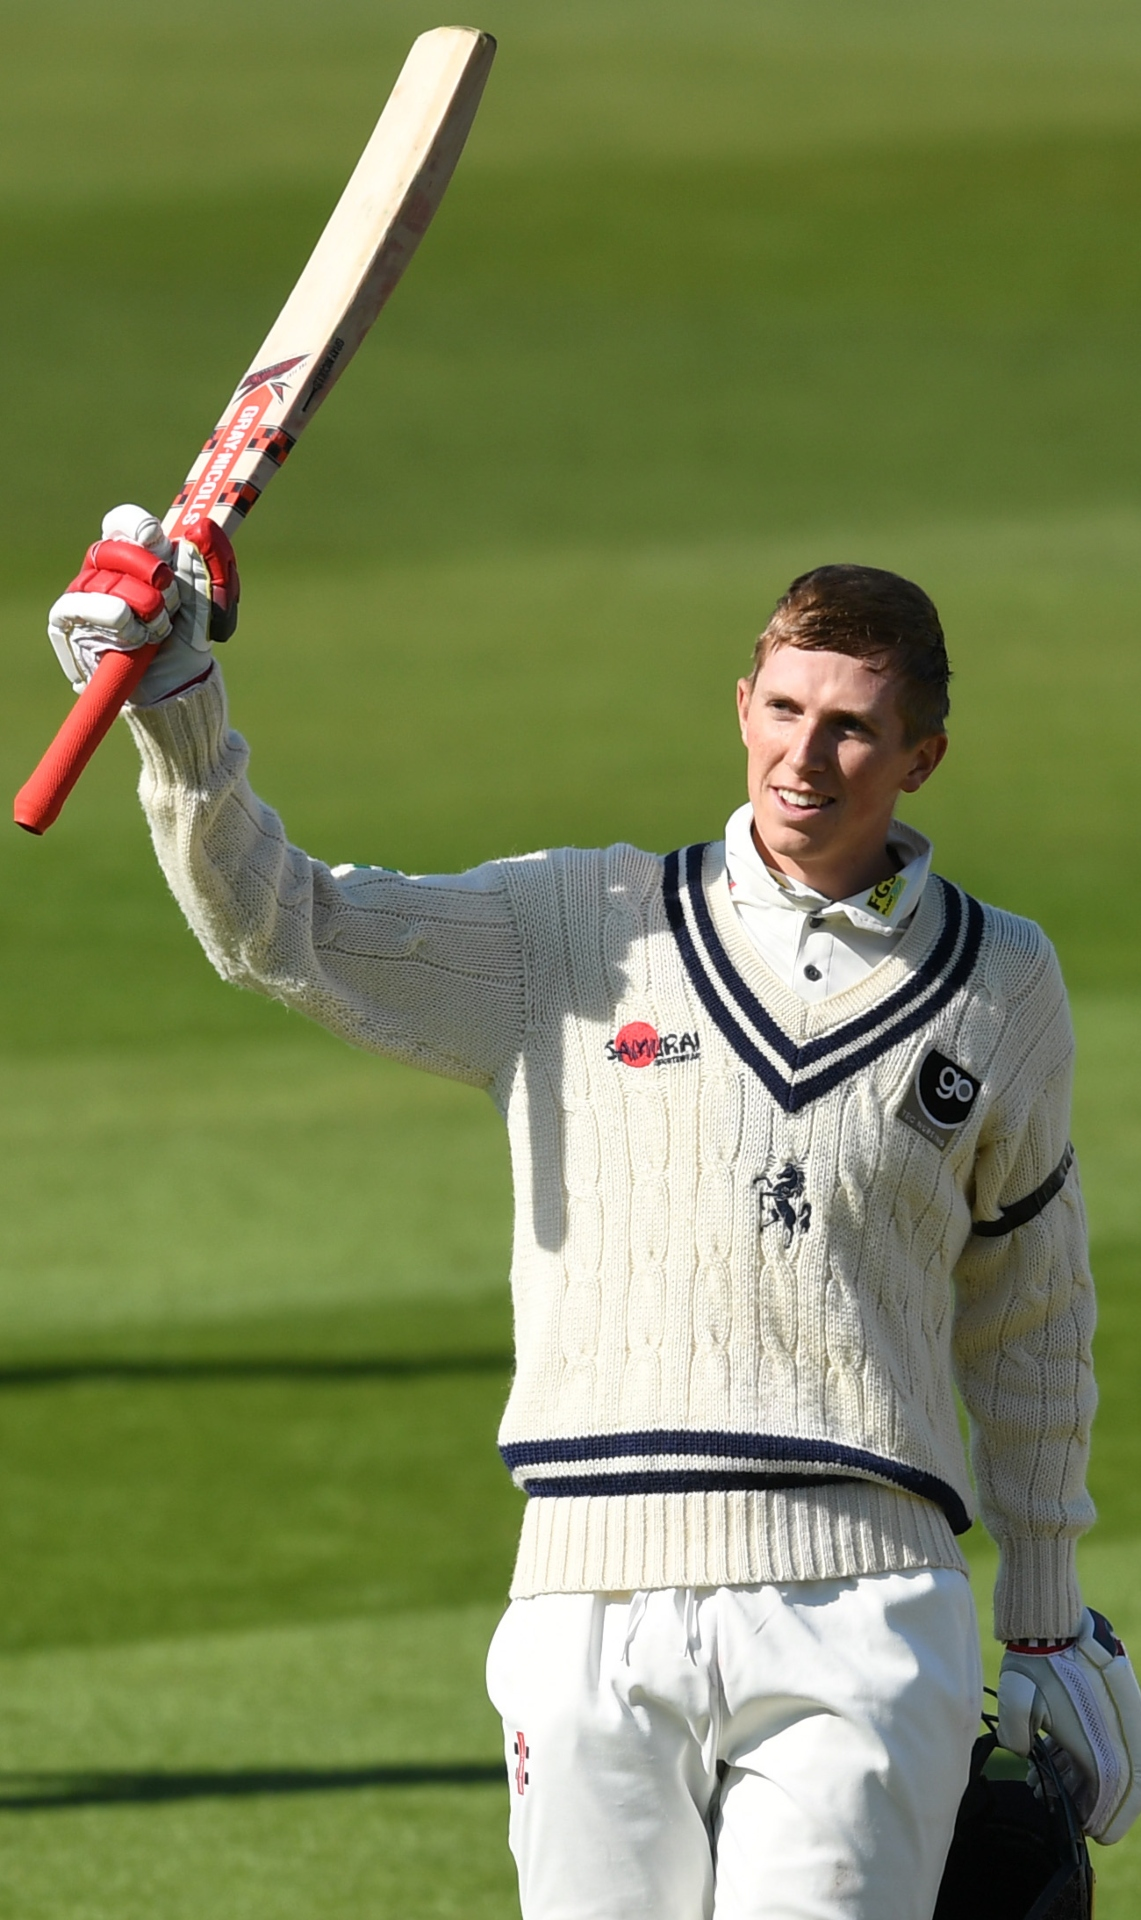 Zak Crawley of Kent celebrates reaching his century during the Specsavers County Championship match between Warwickshire and Kent at Edgbaston Cricket Ground on April 11, 2019 (Photo by Gareth Copley/Getty Images).